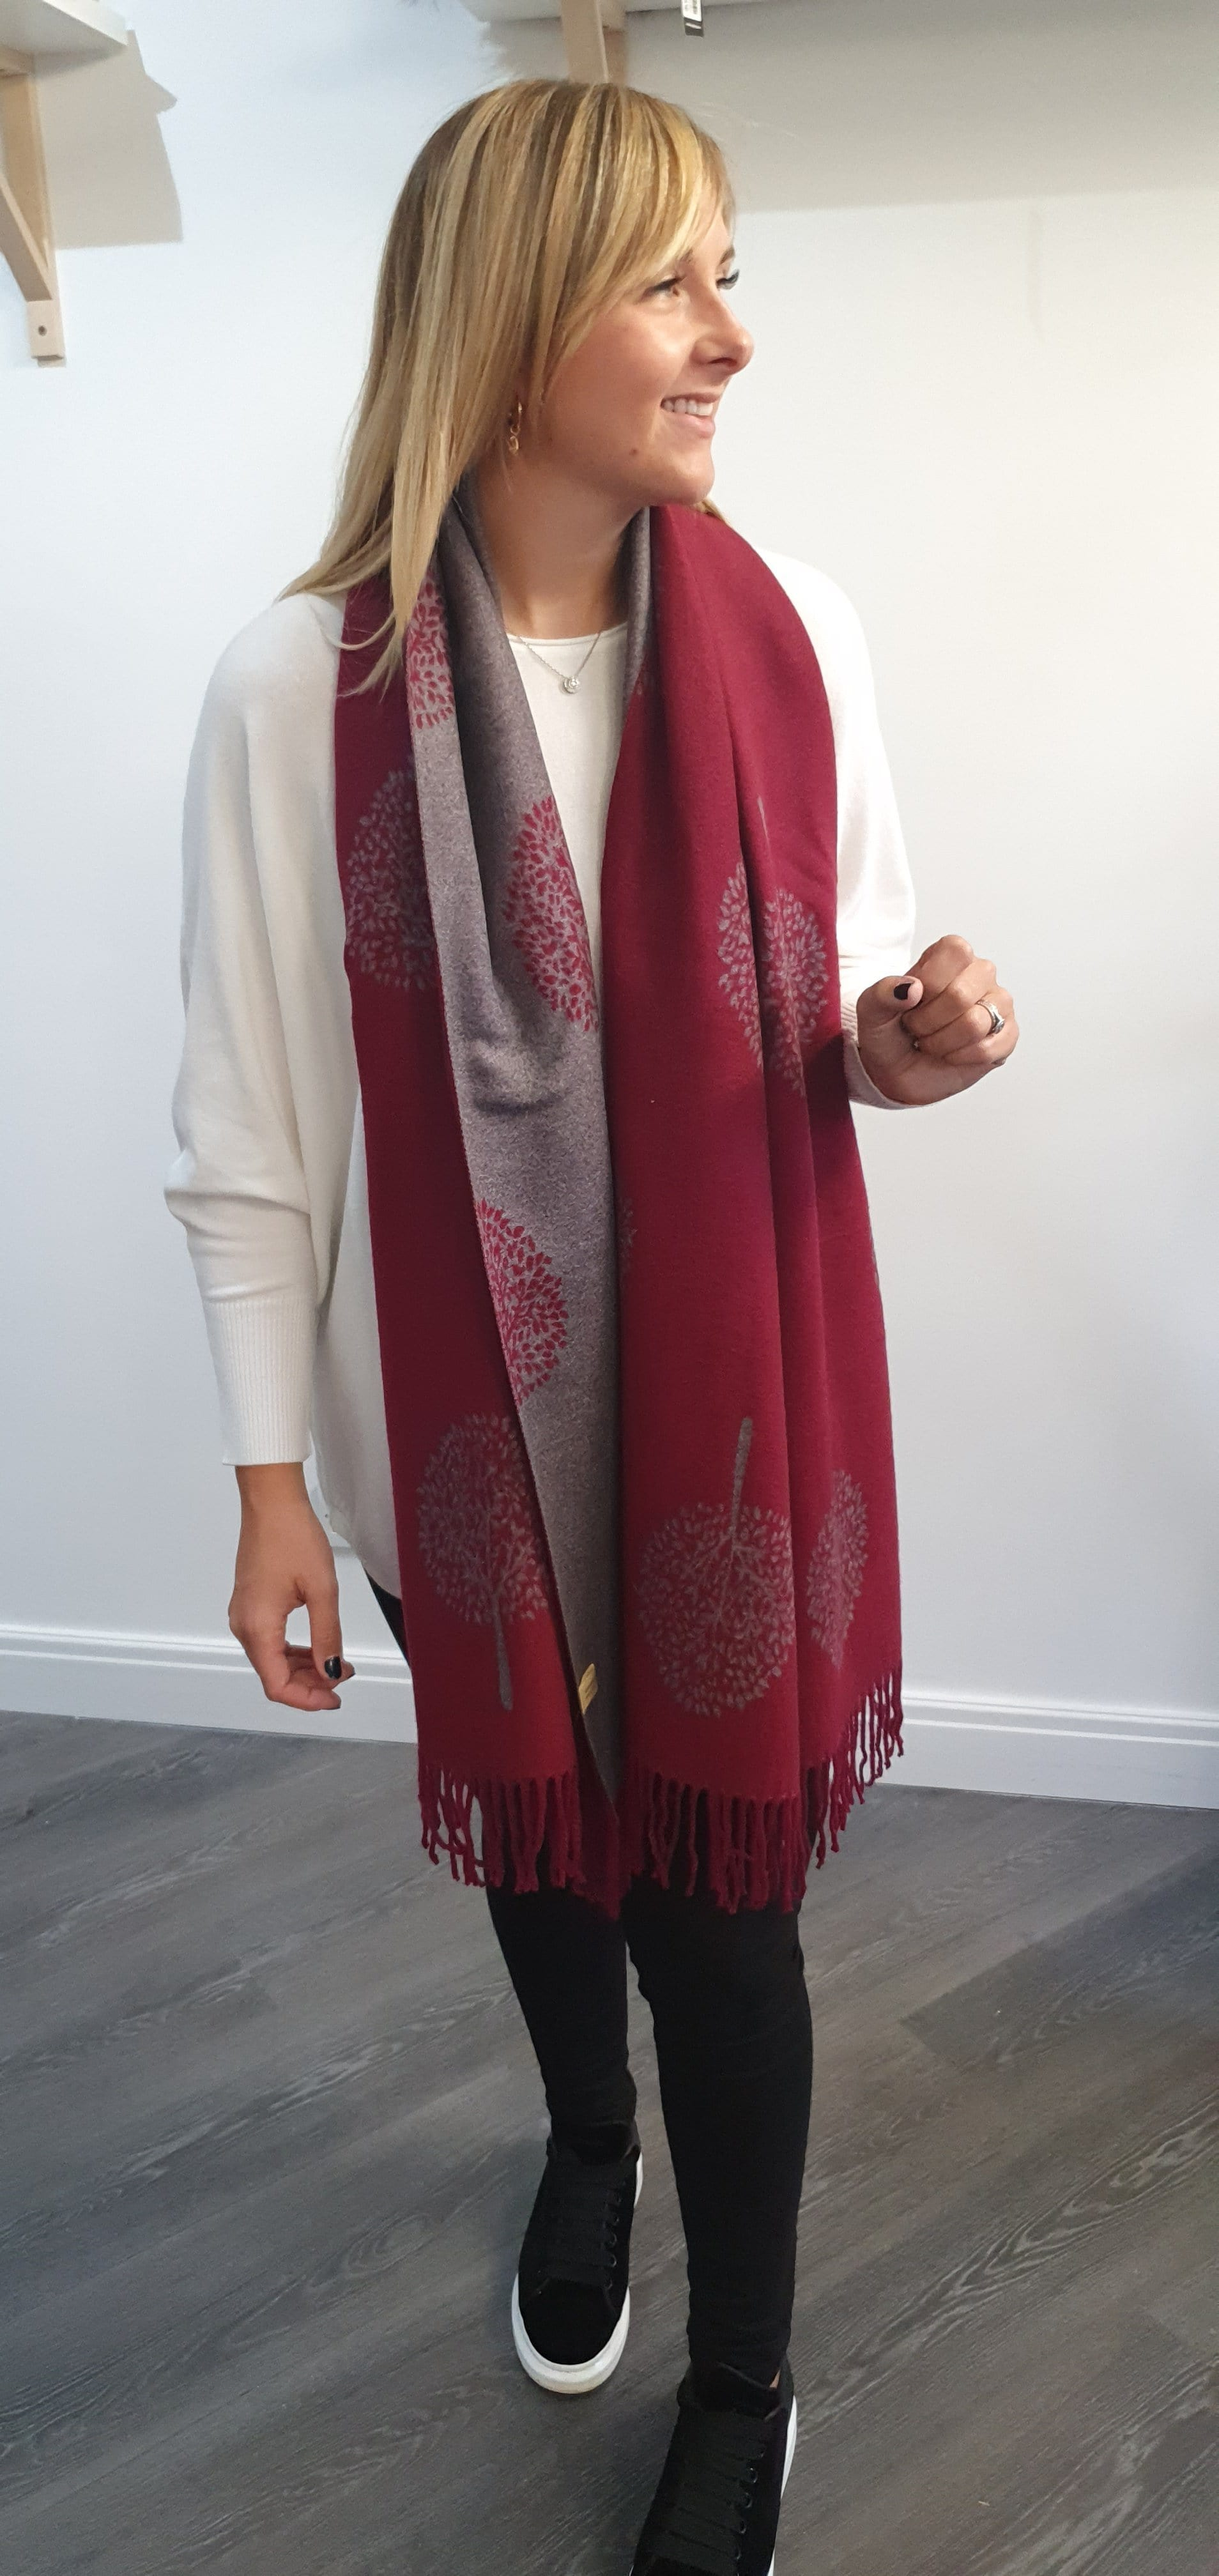 The Mulberry tree scarf